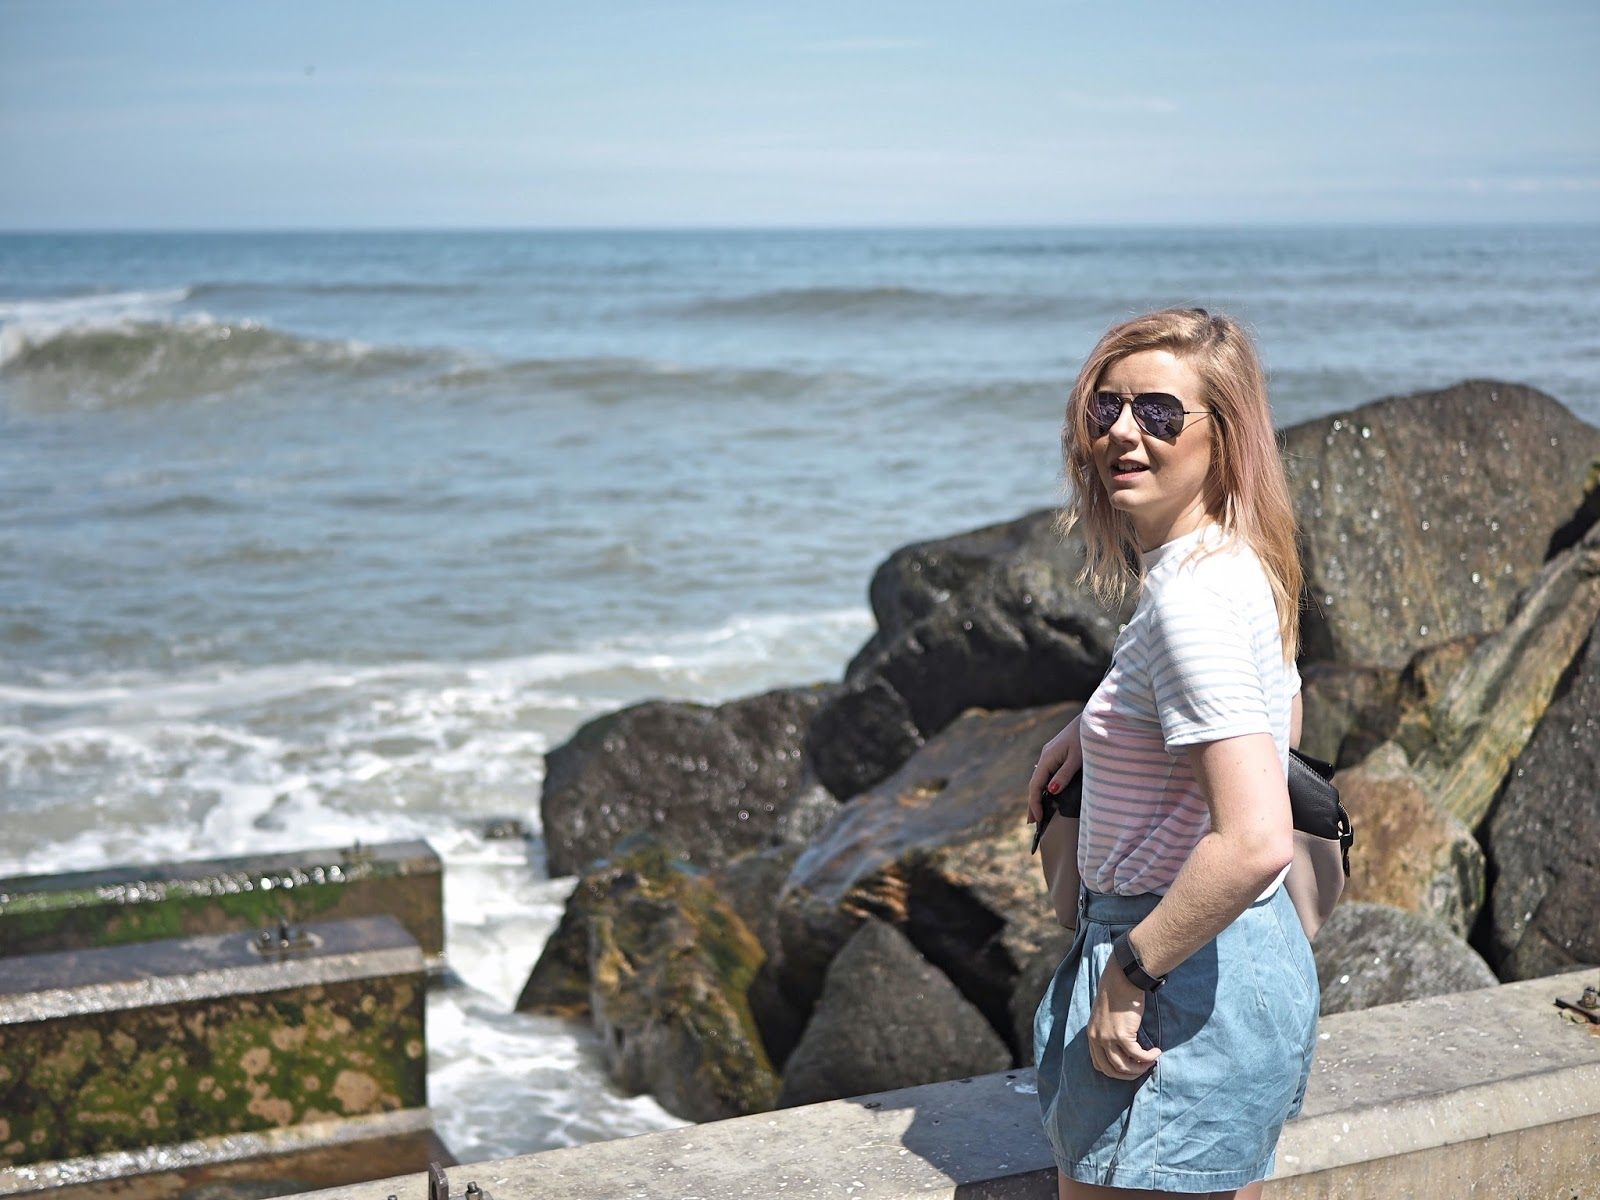 2017-no-results-no-sweat-fitness-blogger-lifestyle-yorkshire-coast-summer-body-confidence-img3